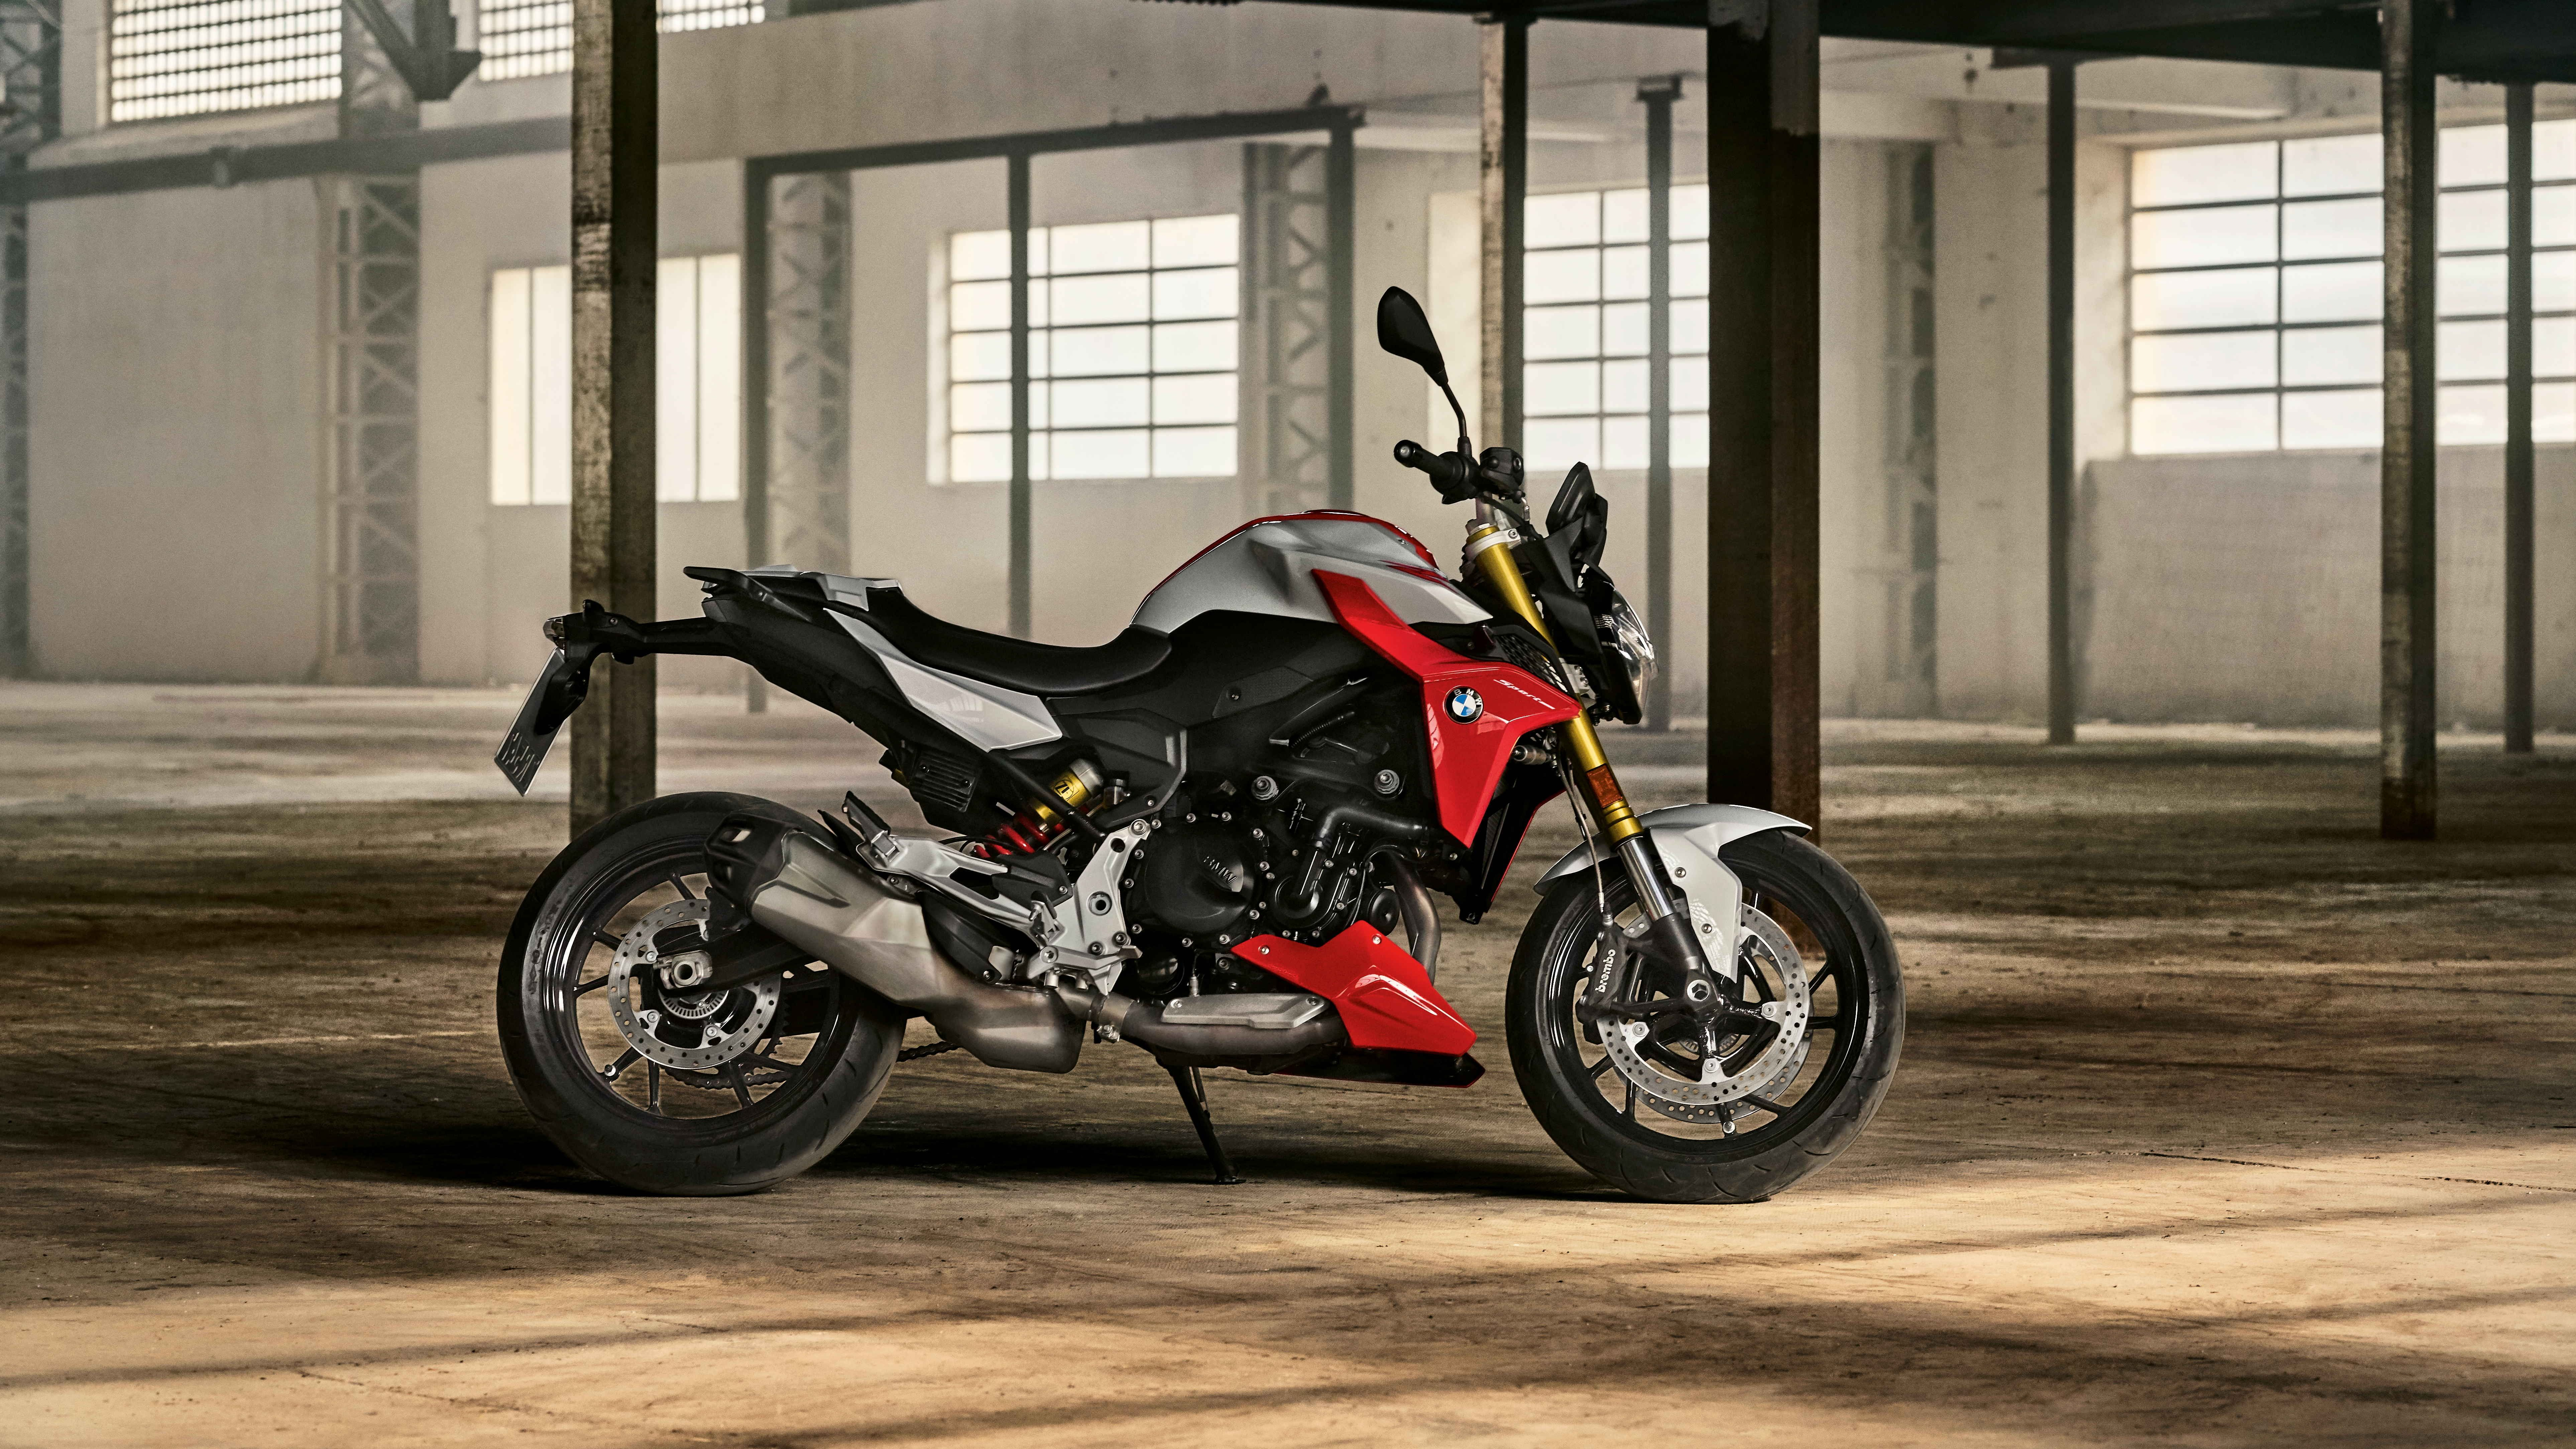 2020 Bmw F 900 R Top Speed In 2020 Street Fighter Motorcycle Bmw Motorcycle